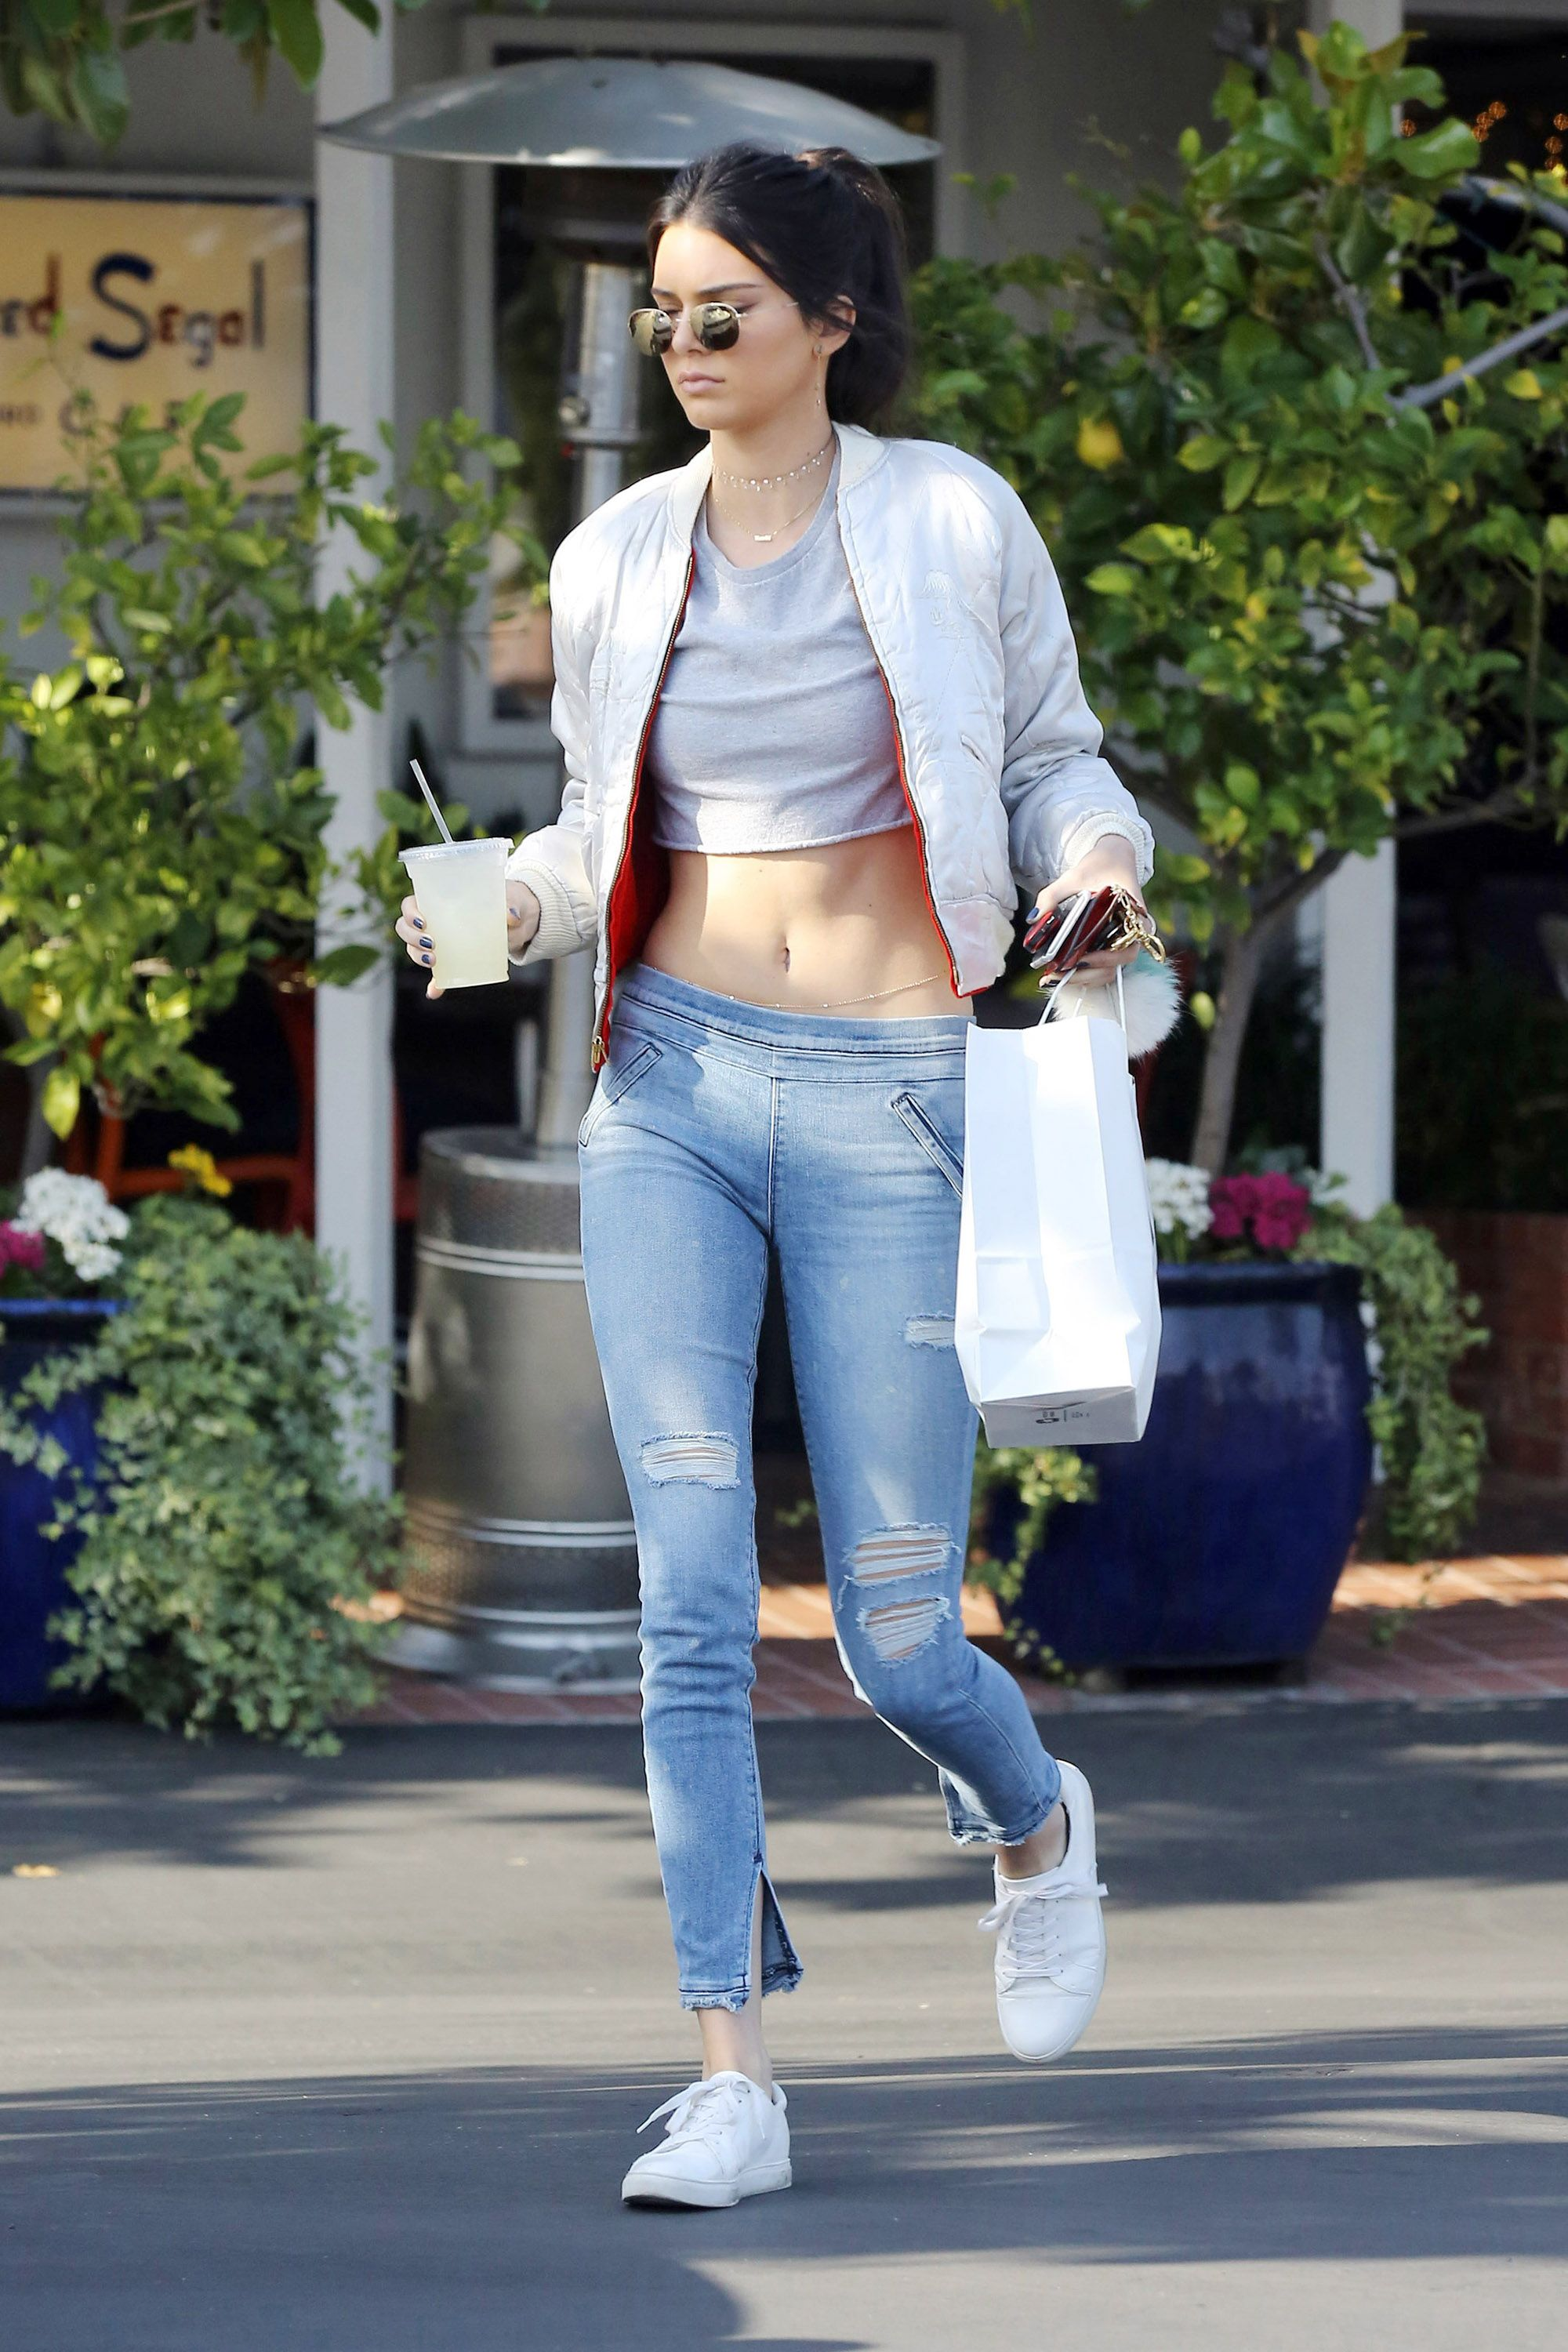 Abs-olutely Chill Take the Kendall Jenner route with a belly-baring crop top